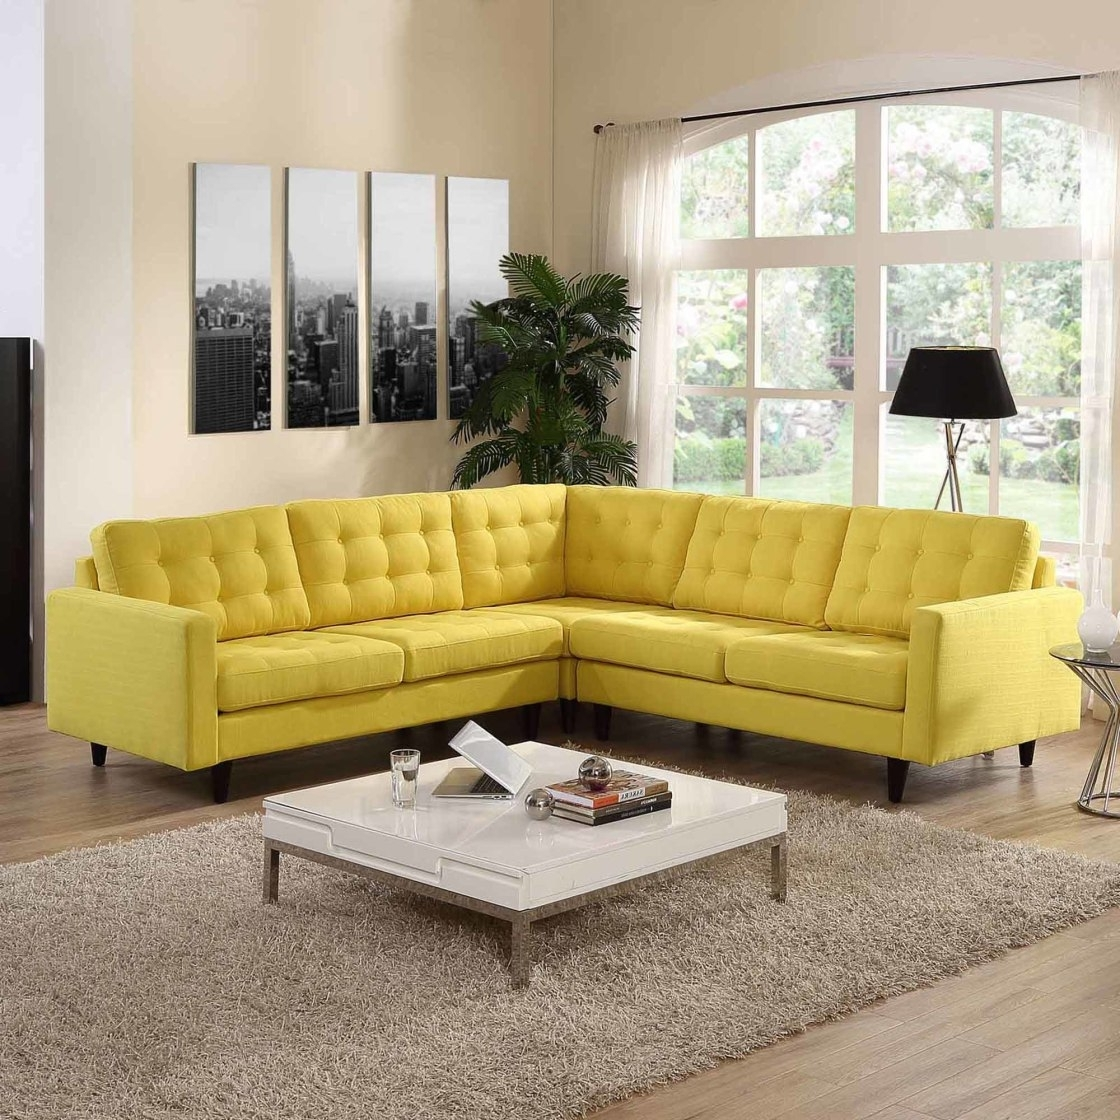 Room Decor, Living Rooms And (View 19 of 20)